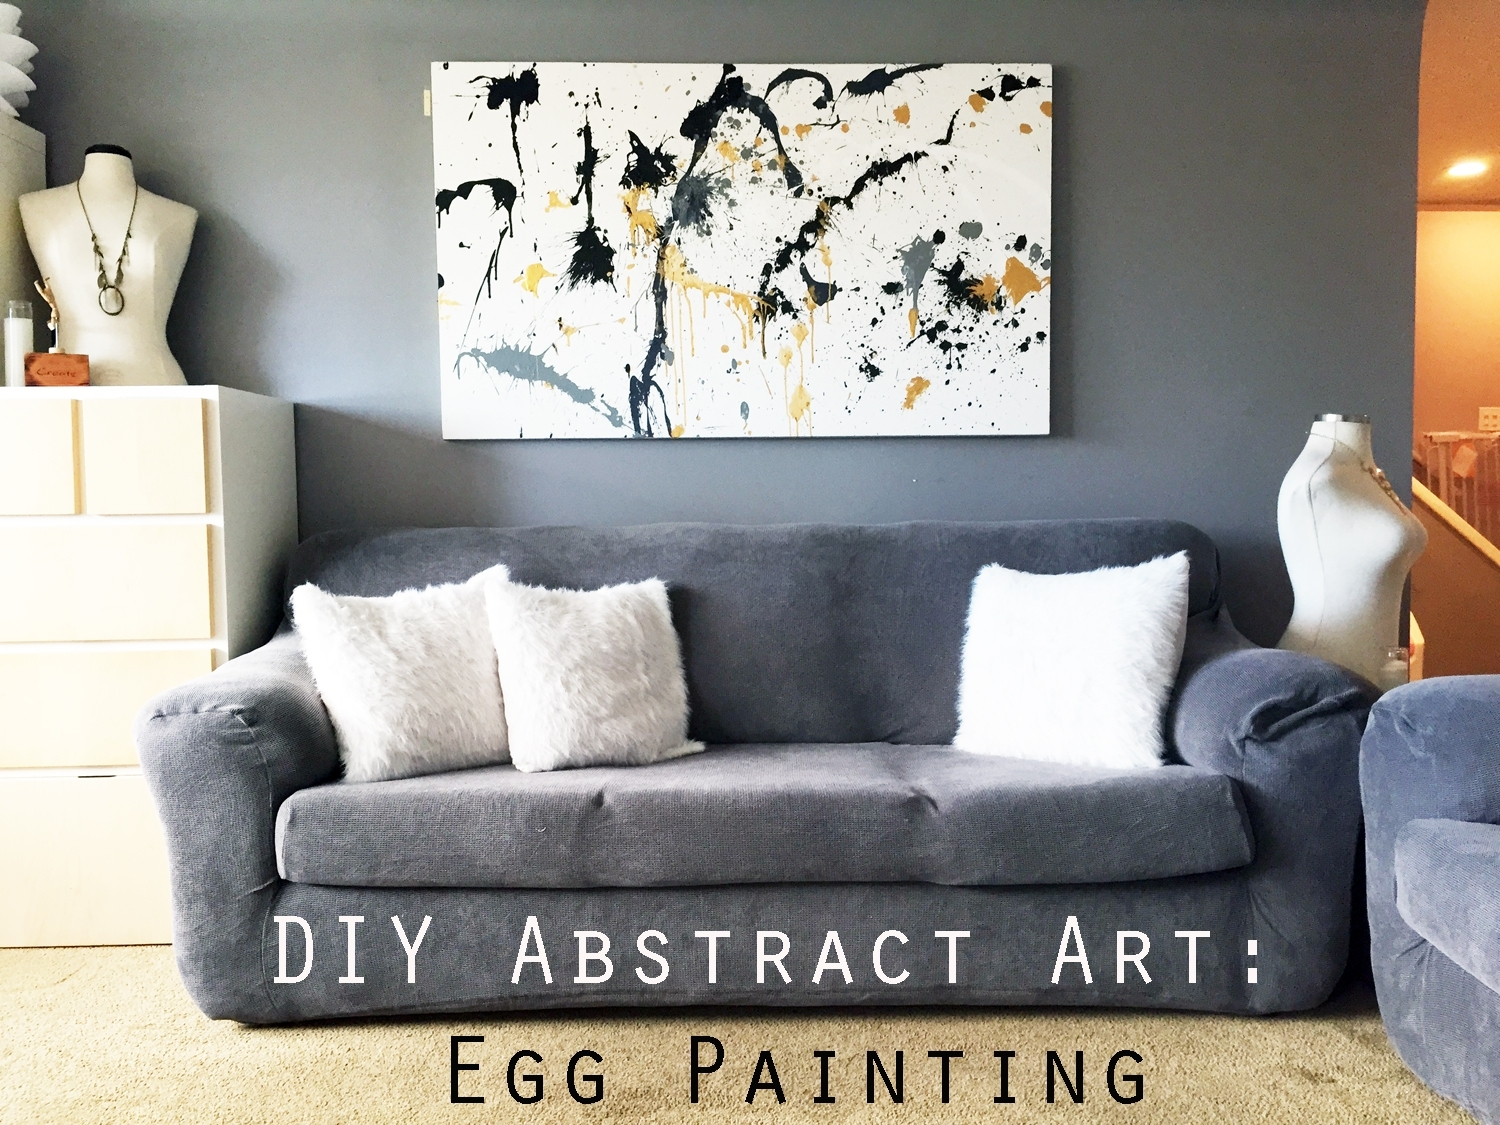 Diy Canvas Painting: Egg Splatter Gold Abstract Art – Creative Intended For 2017 Diy Abstract Canvas Wall Art (View 16 of 20)